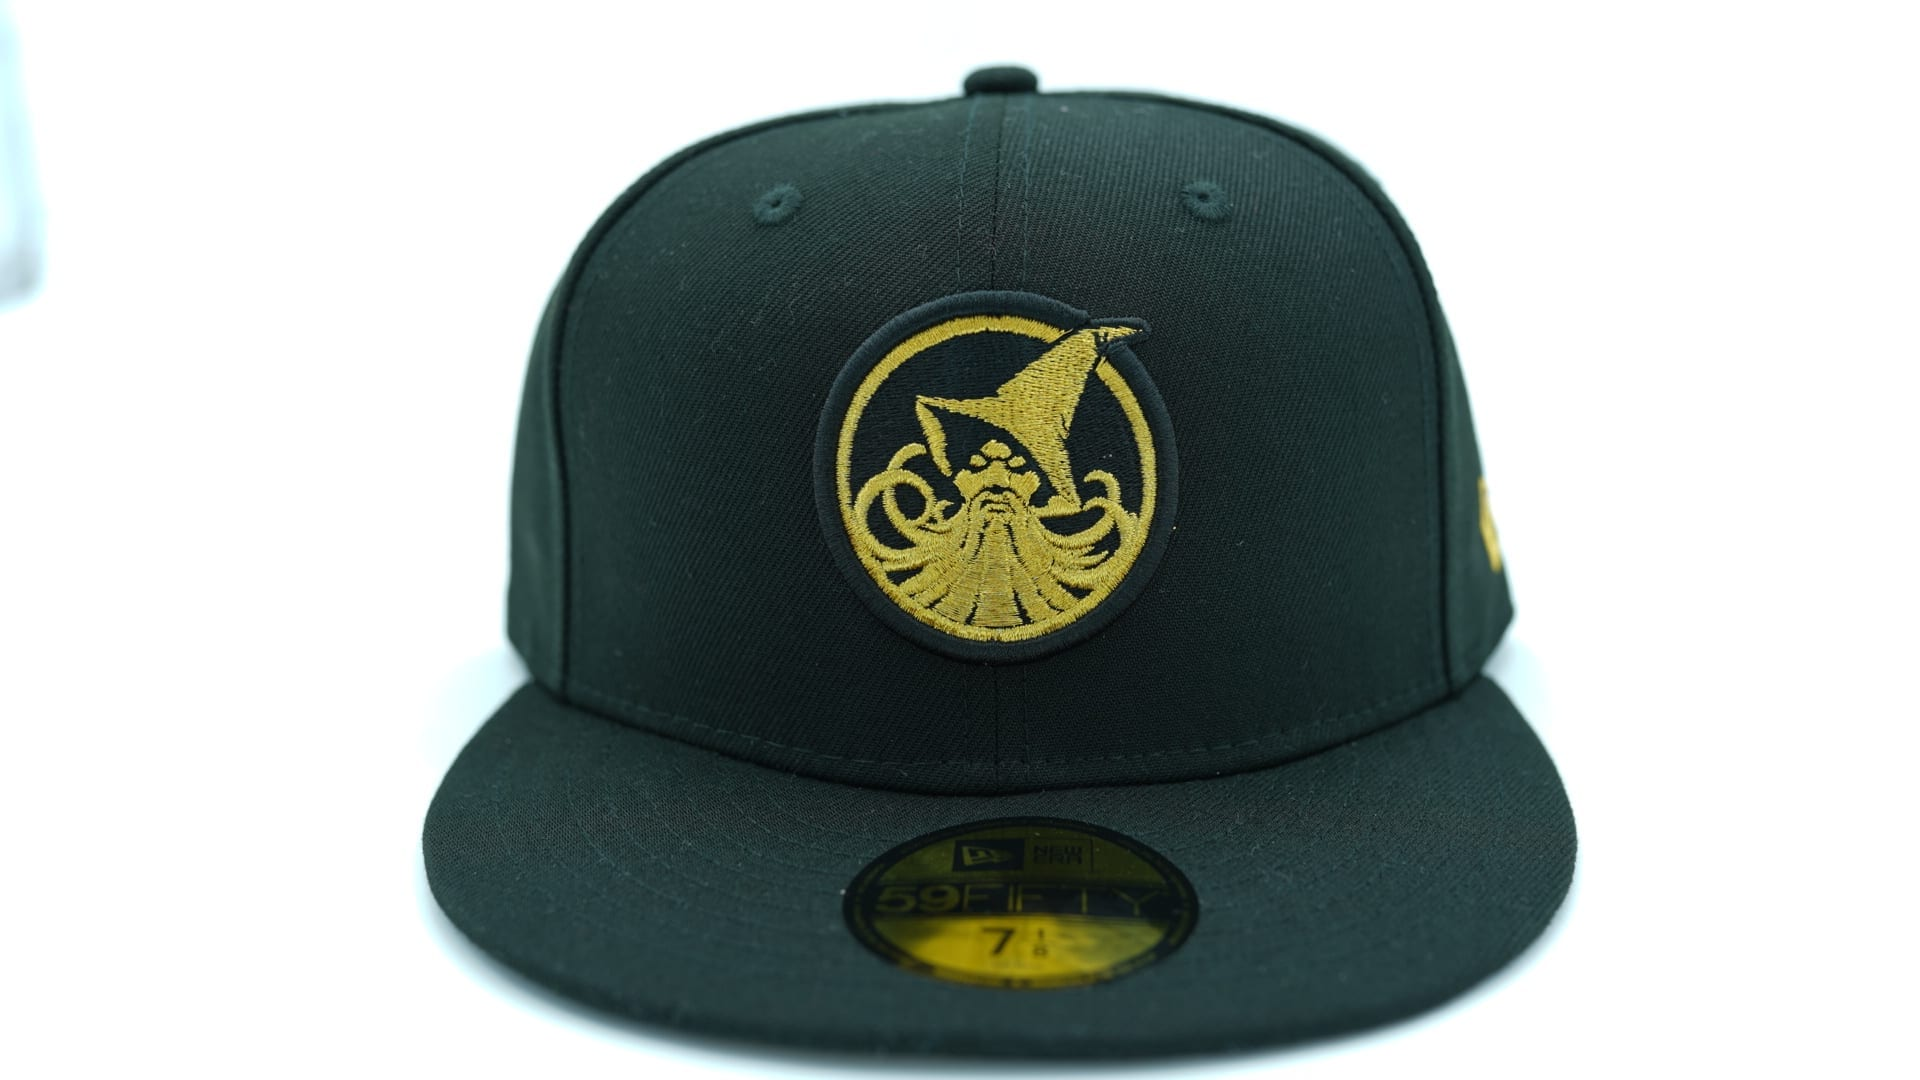 10-Deep-New-Era-The-Trespass-Melton-Wool-59Fifty-2